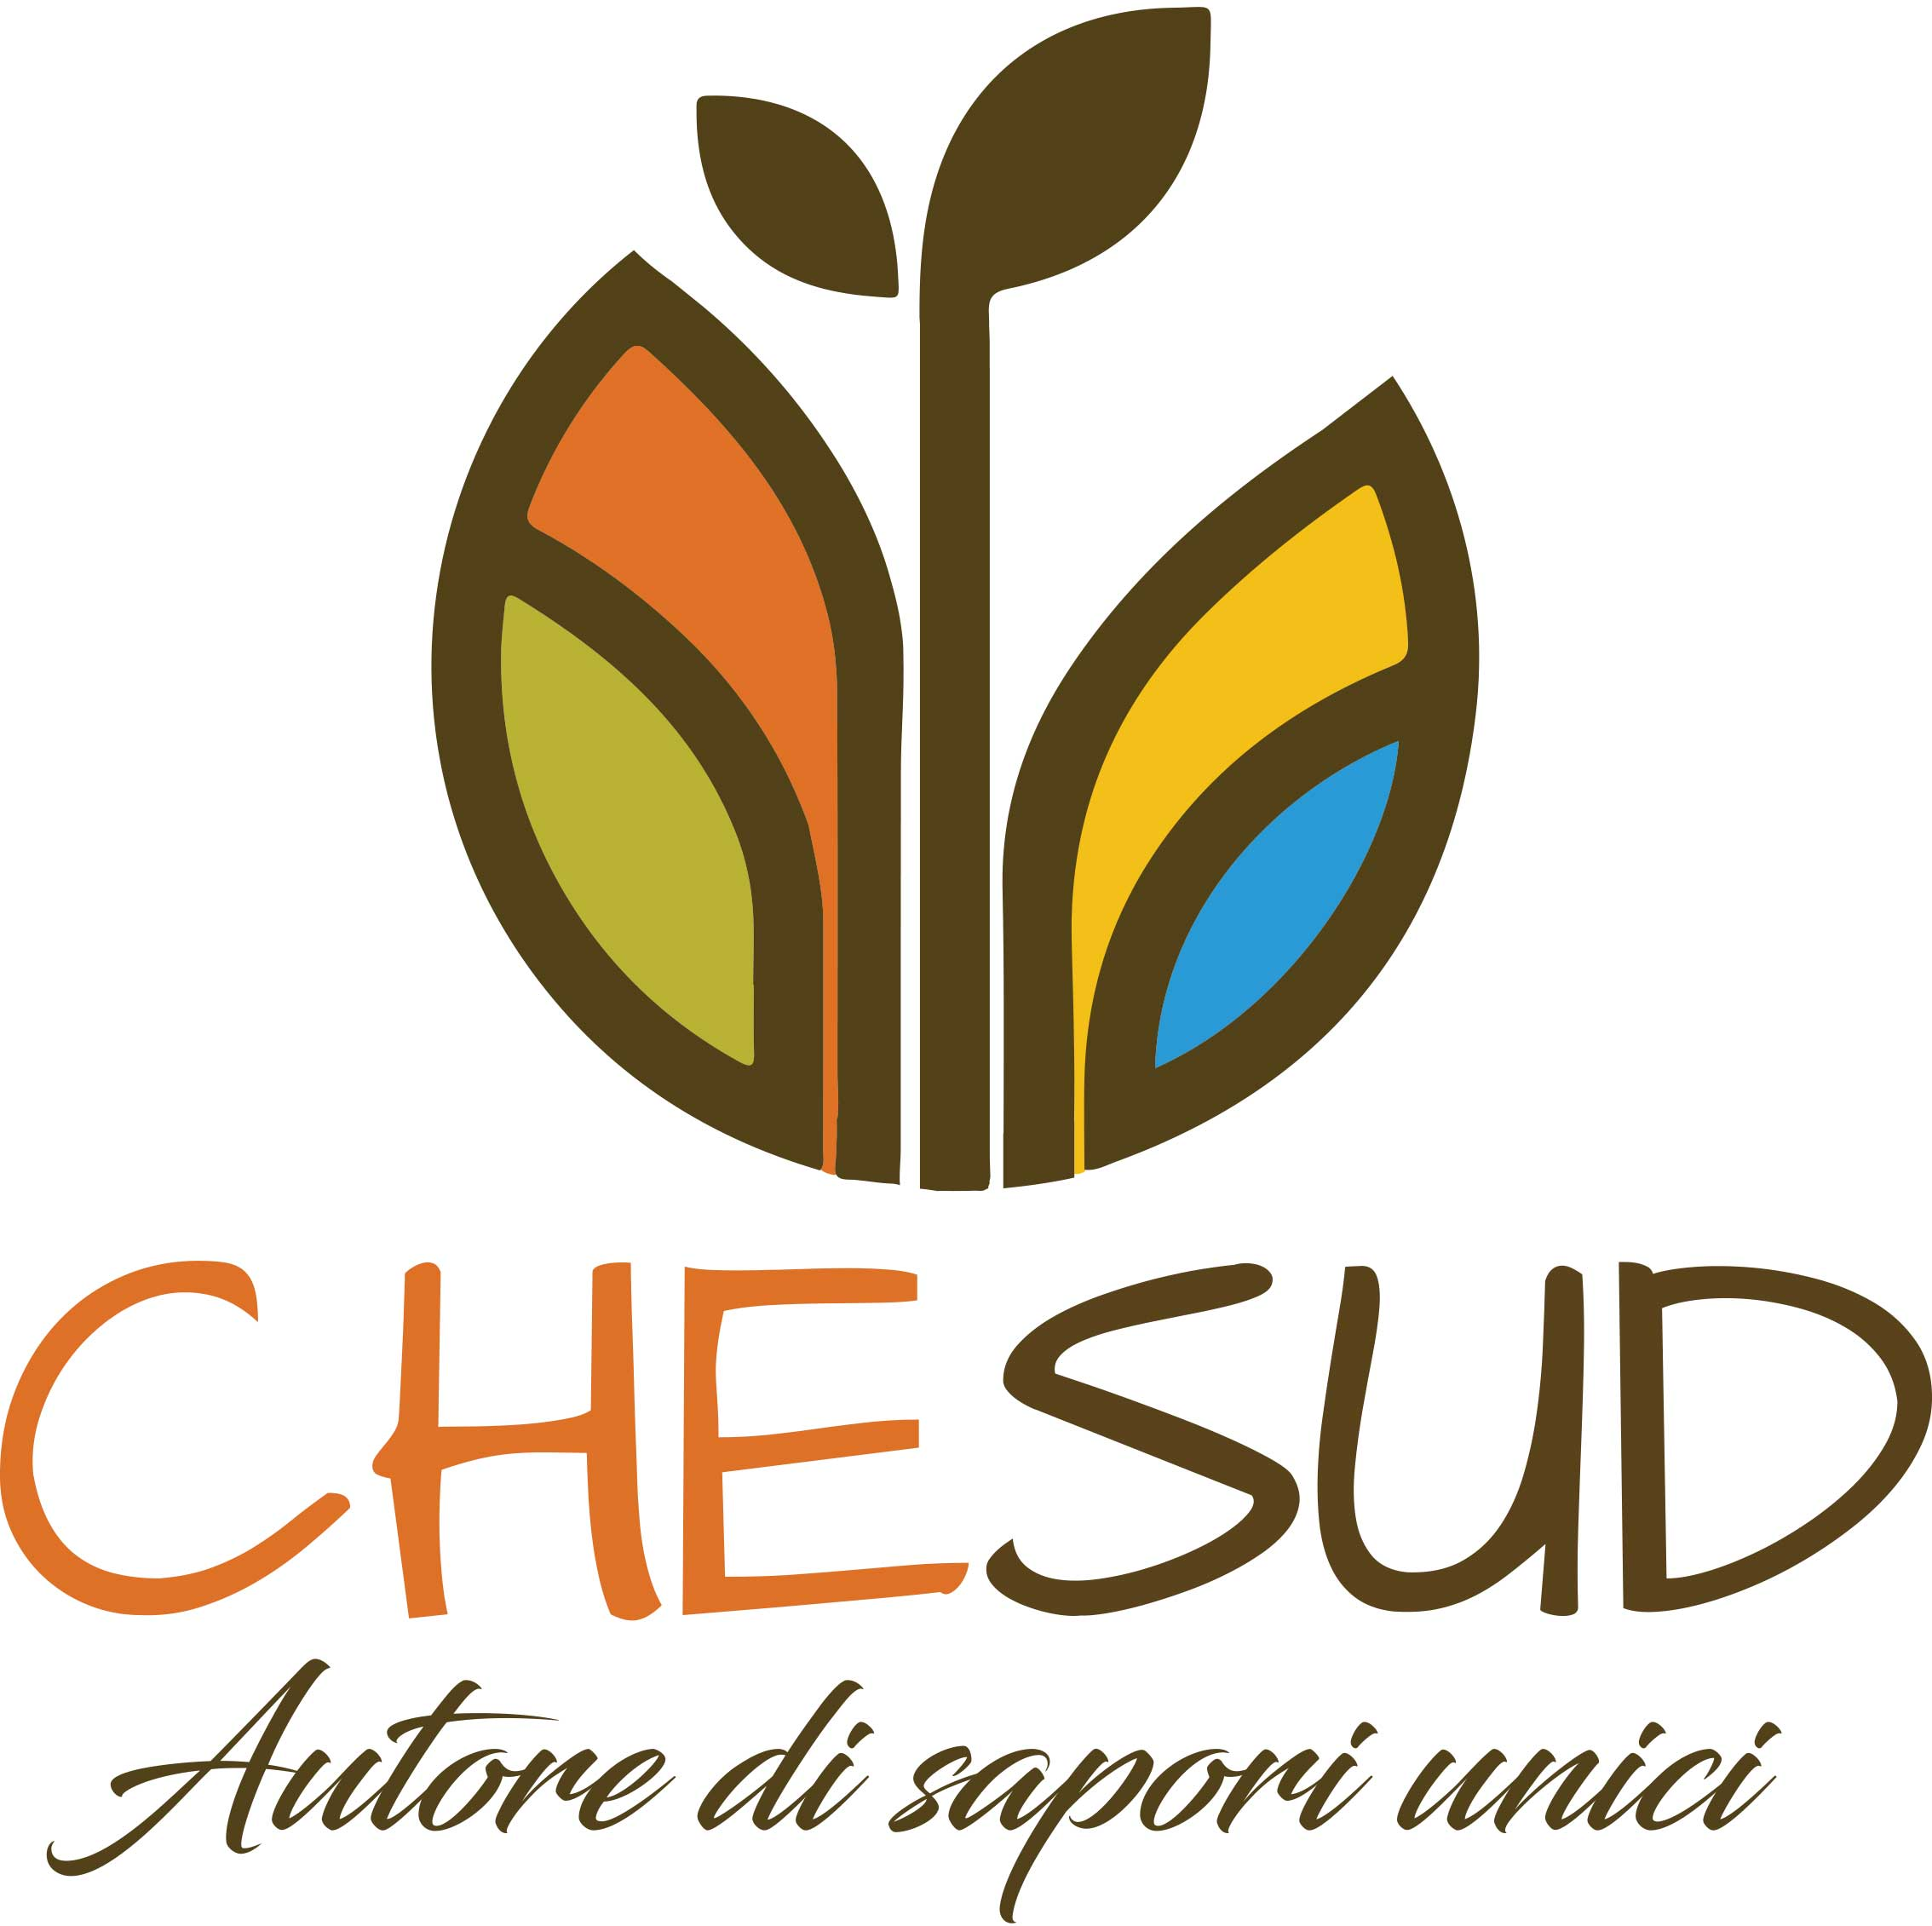 CheSud